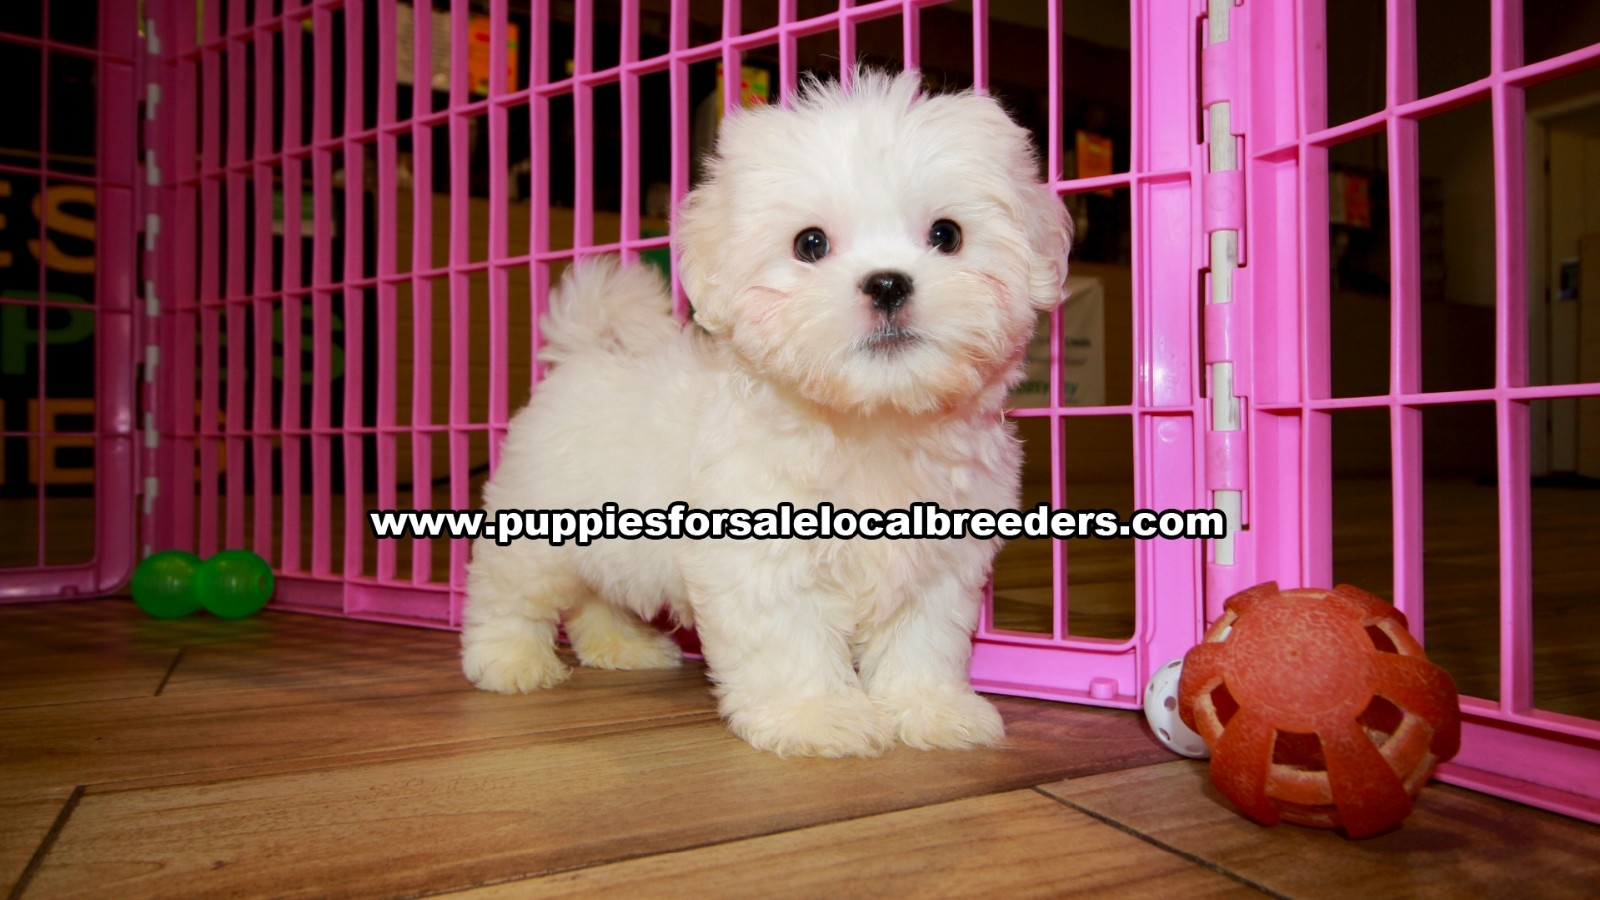 White Malti Tzu, Puppies For Sale In Georgia, Local Breeders, Near Atlanta, Ga